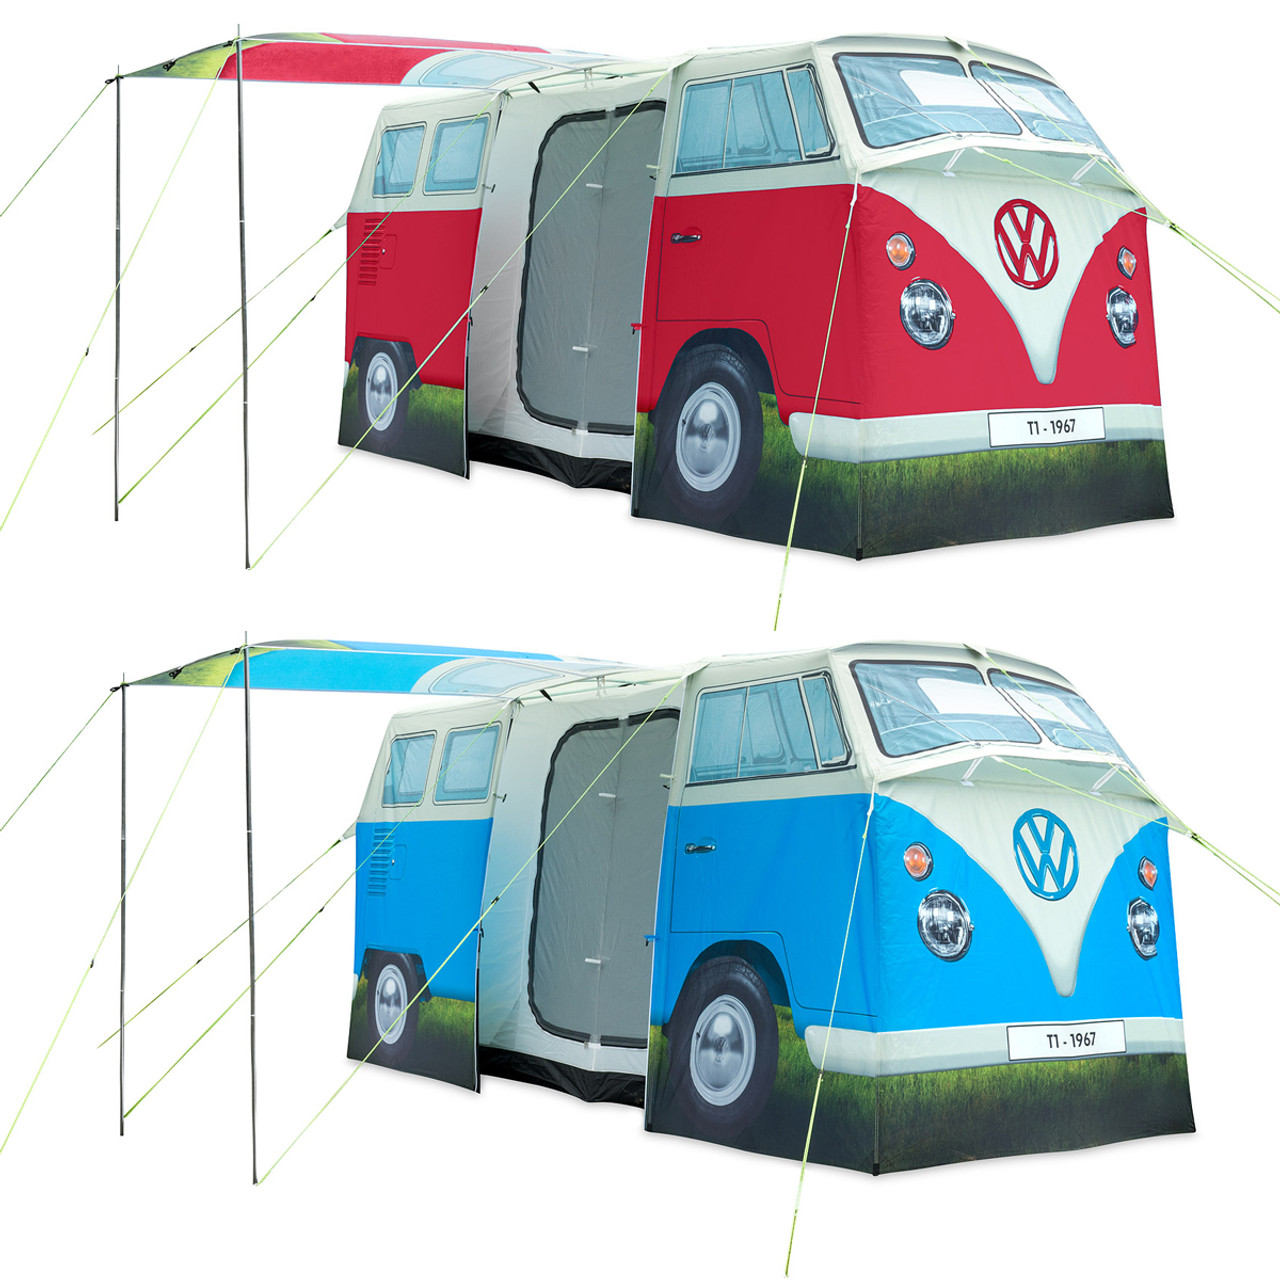 Vw Camper Van >> Adult Vw Campervan 4 Man Tent Campervan Gift Ltd